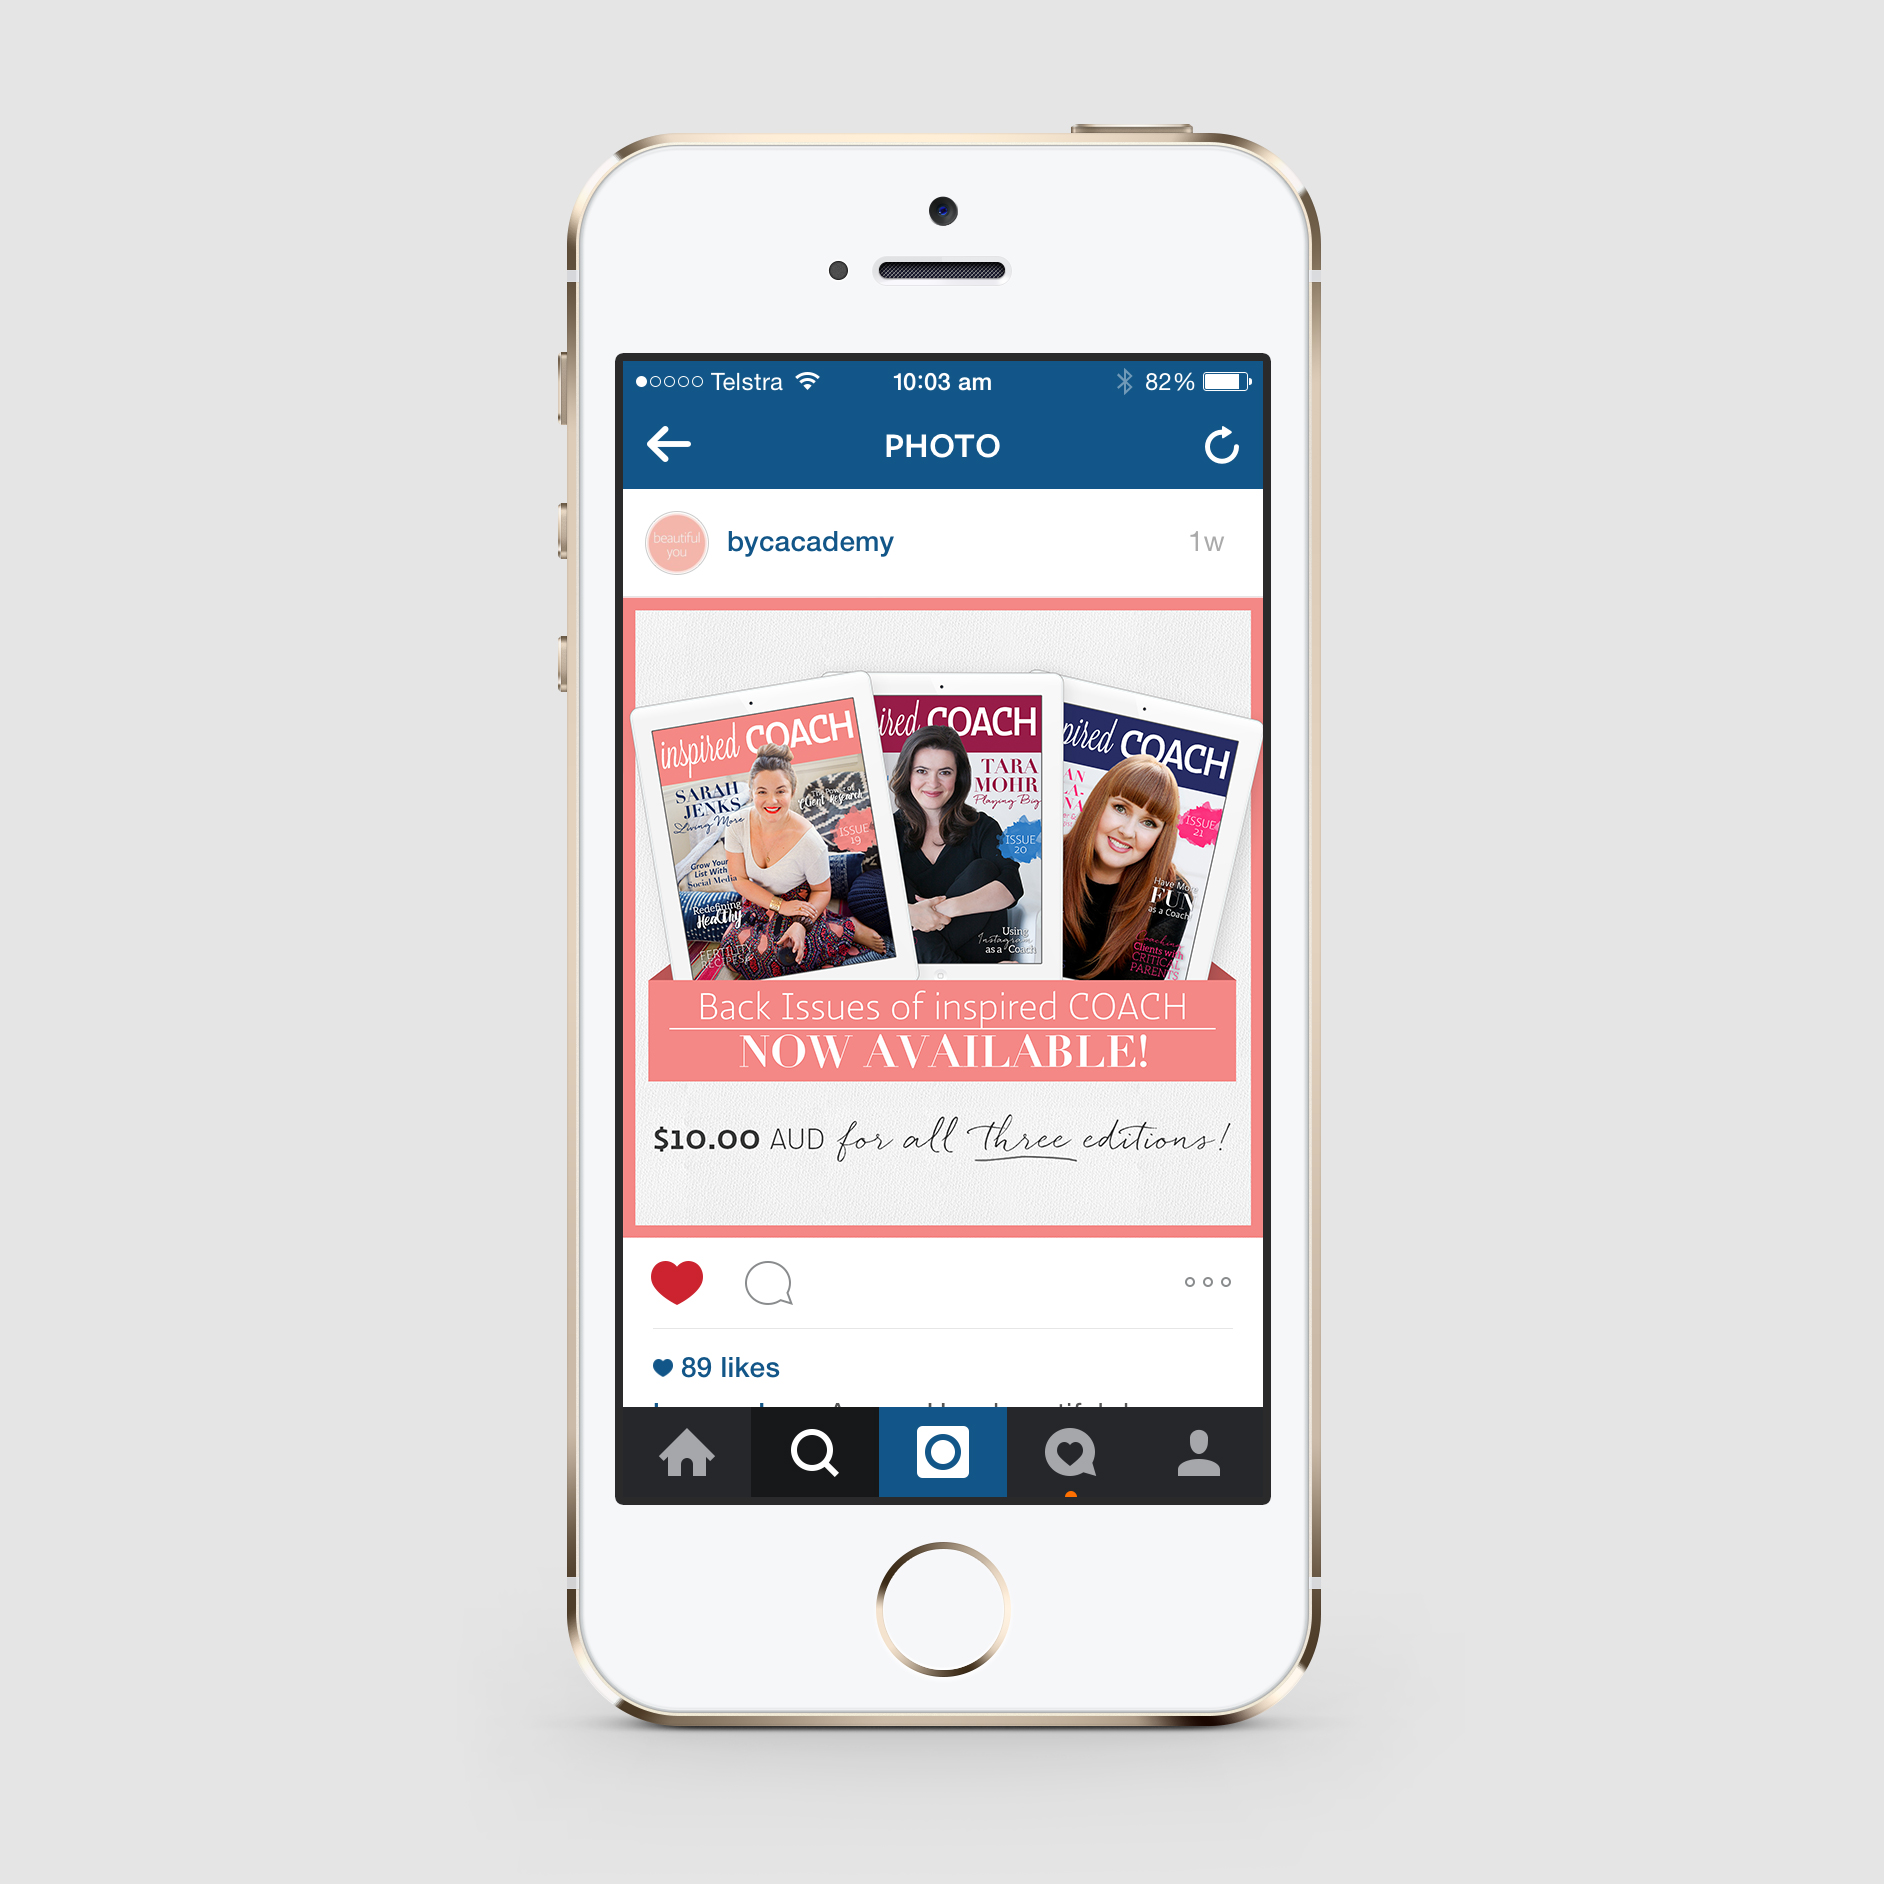 Promotional Instagram image for Beautiful You Coaching Academy - inspired COACH Magazine.